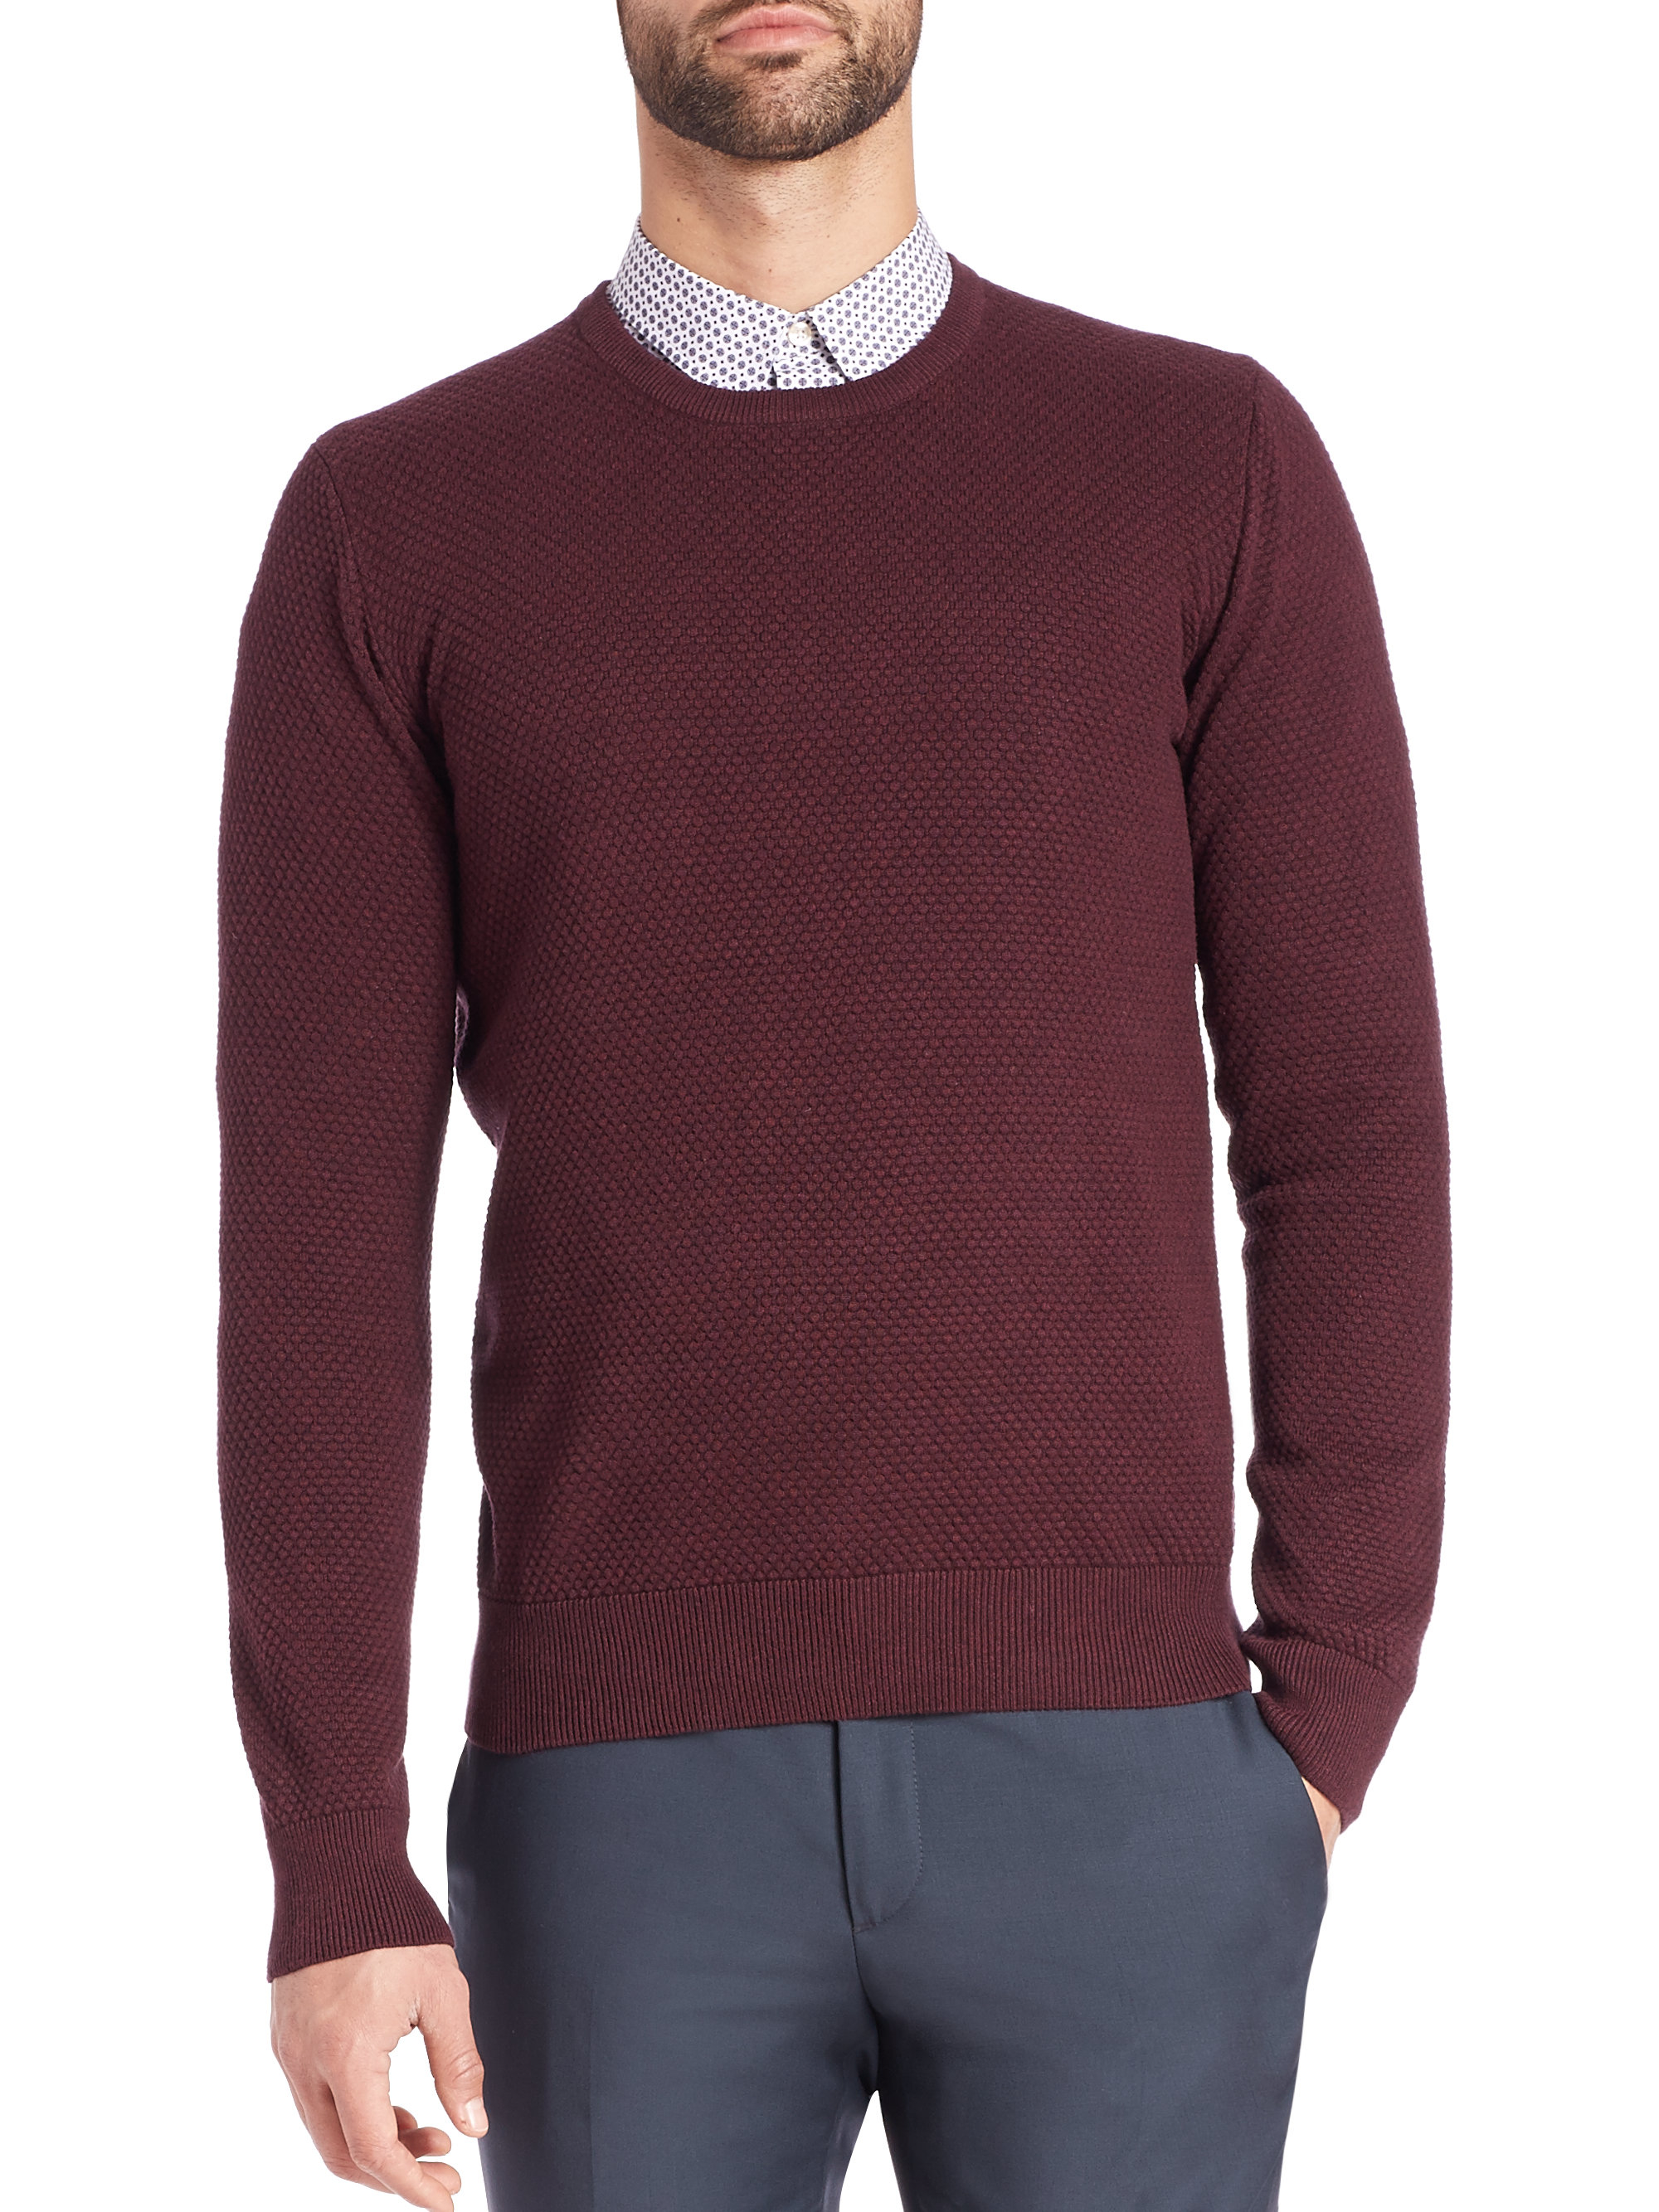 Circle Sweater: J.lindeberg Dexter Circle Texture Sweater In Purple For